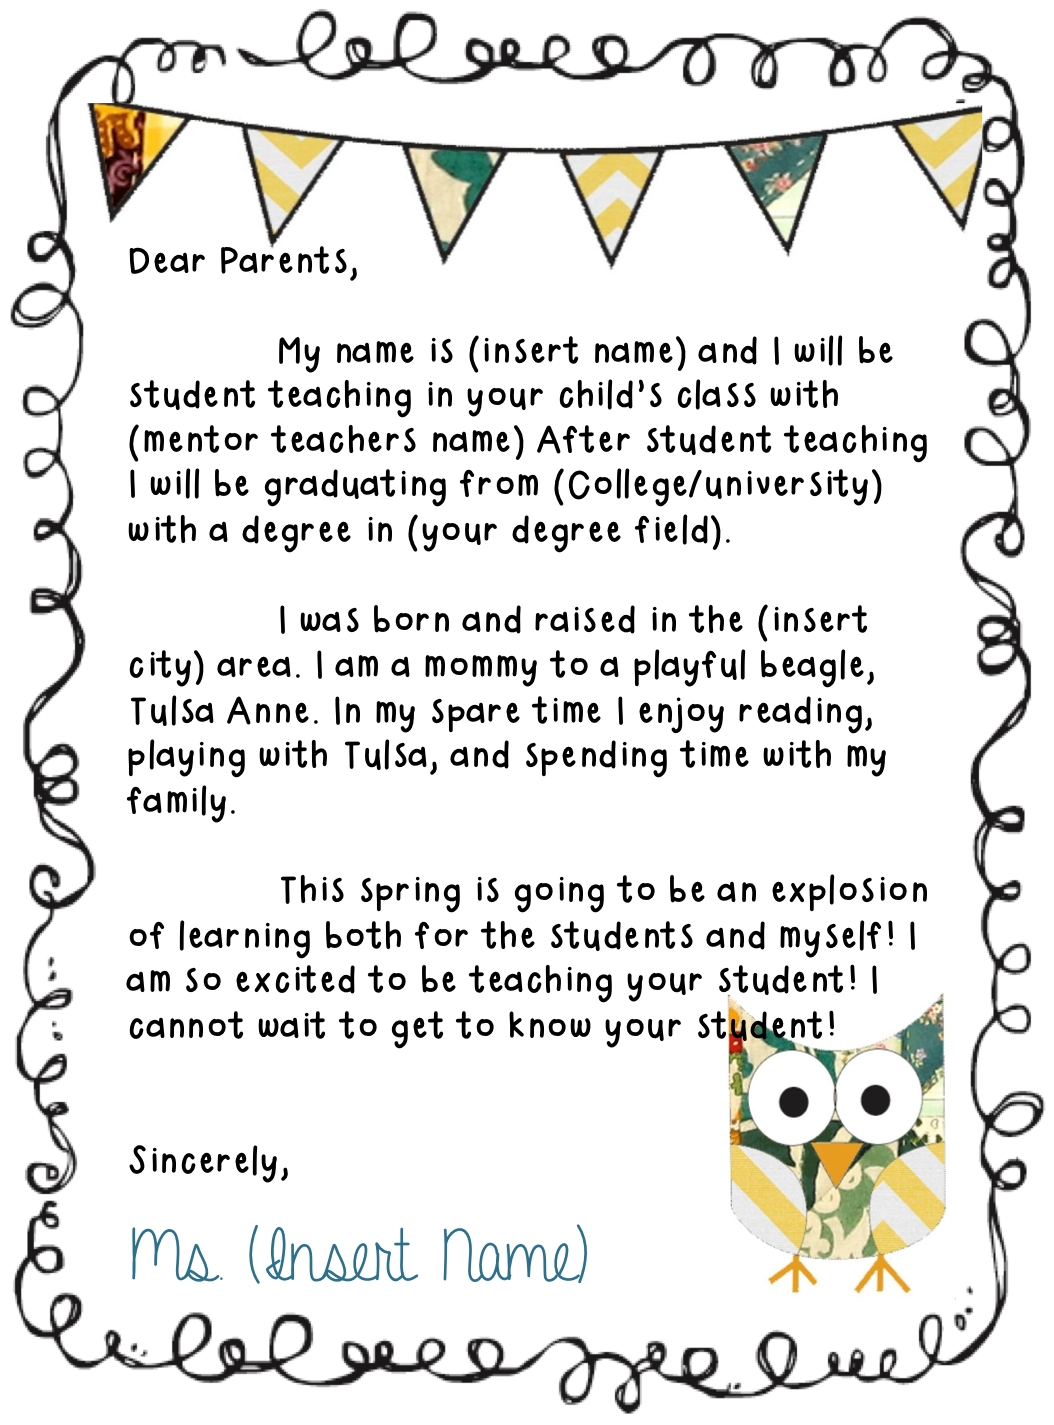 eebcab67ff3c8127f0d449d1857a89d4 Teacher Welcome Letter To Parents Template on high school, first grade, 3rd grade math, day care, 5th grade, free printable, special education new, sample preschool,